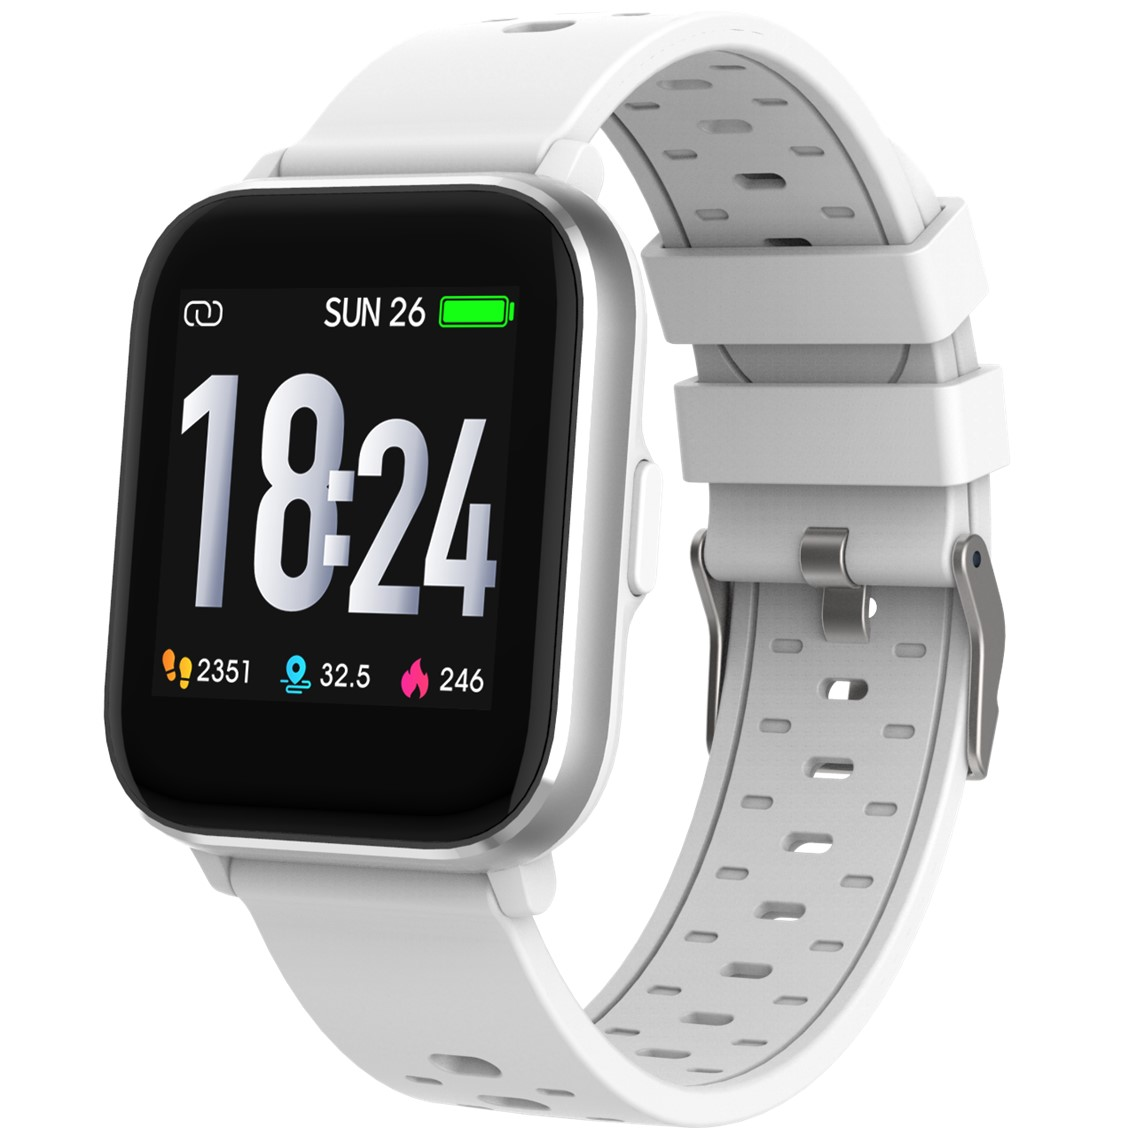 Reloj denver smartwatch sw - 163white